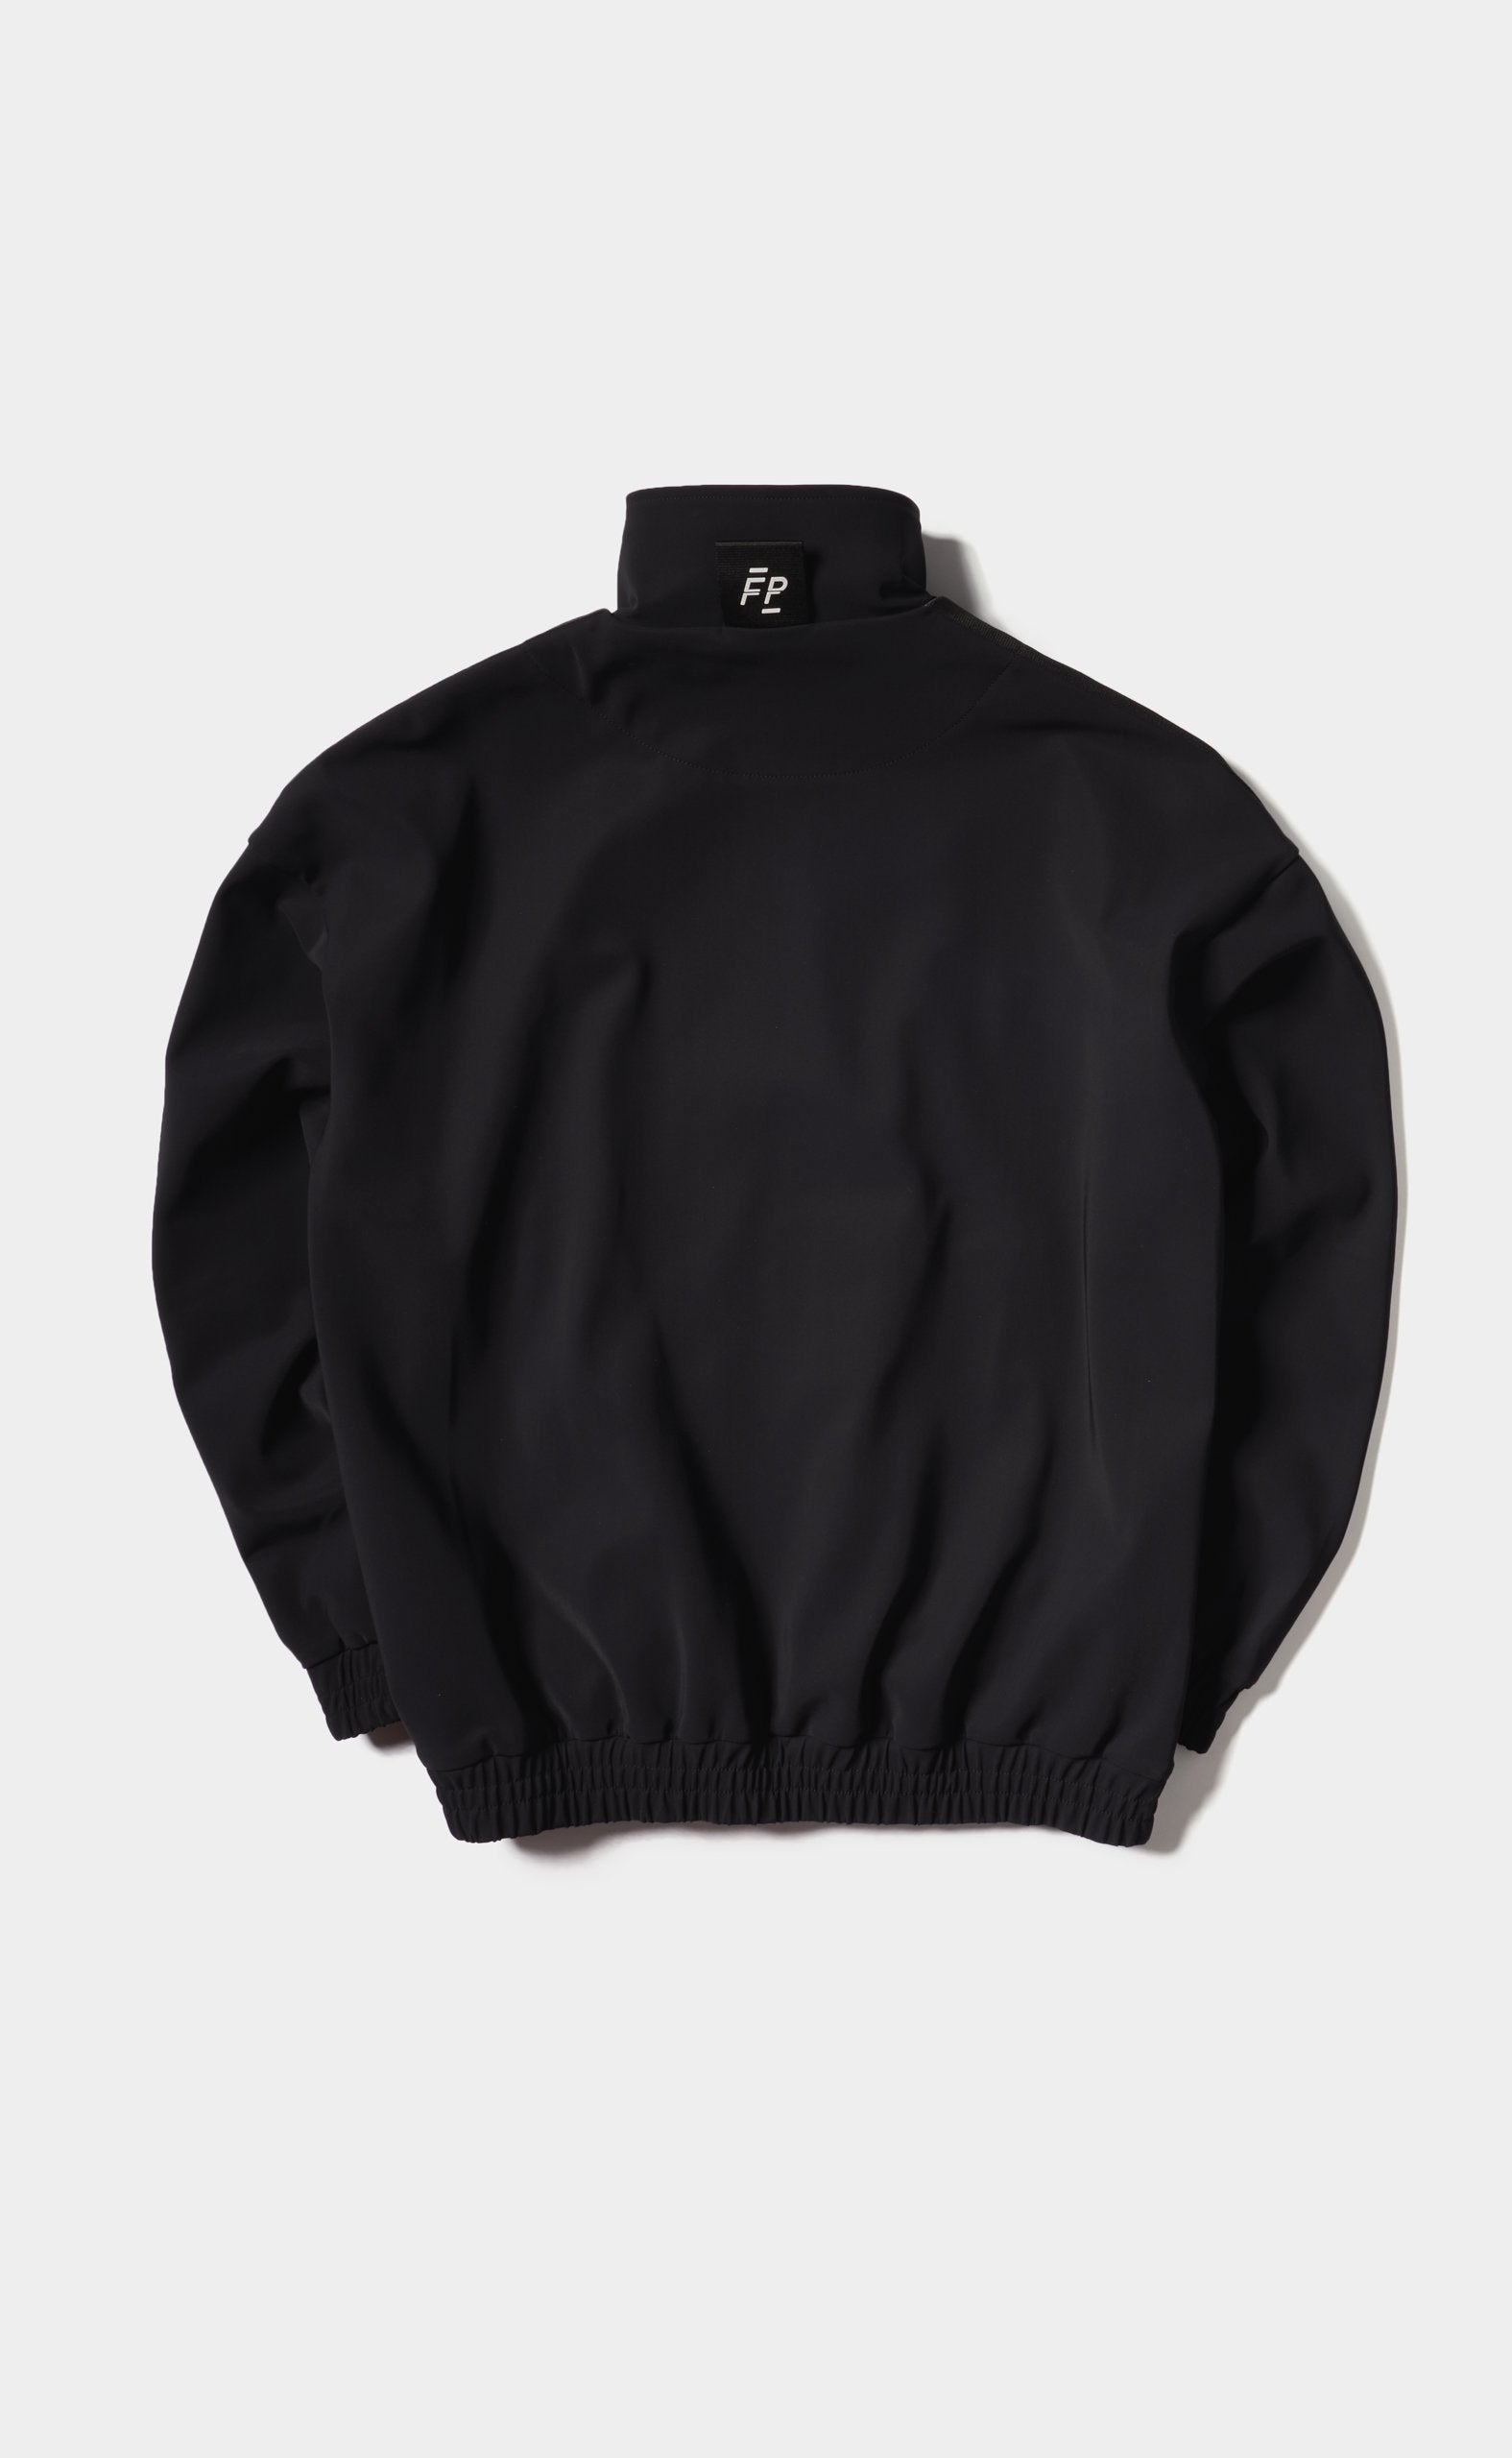 Athlete Jacket Black